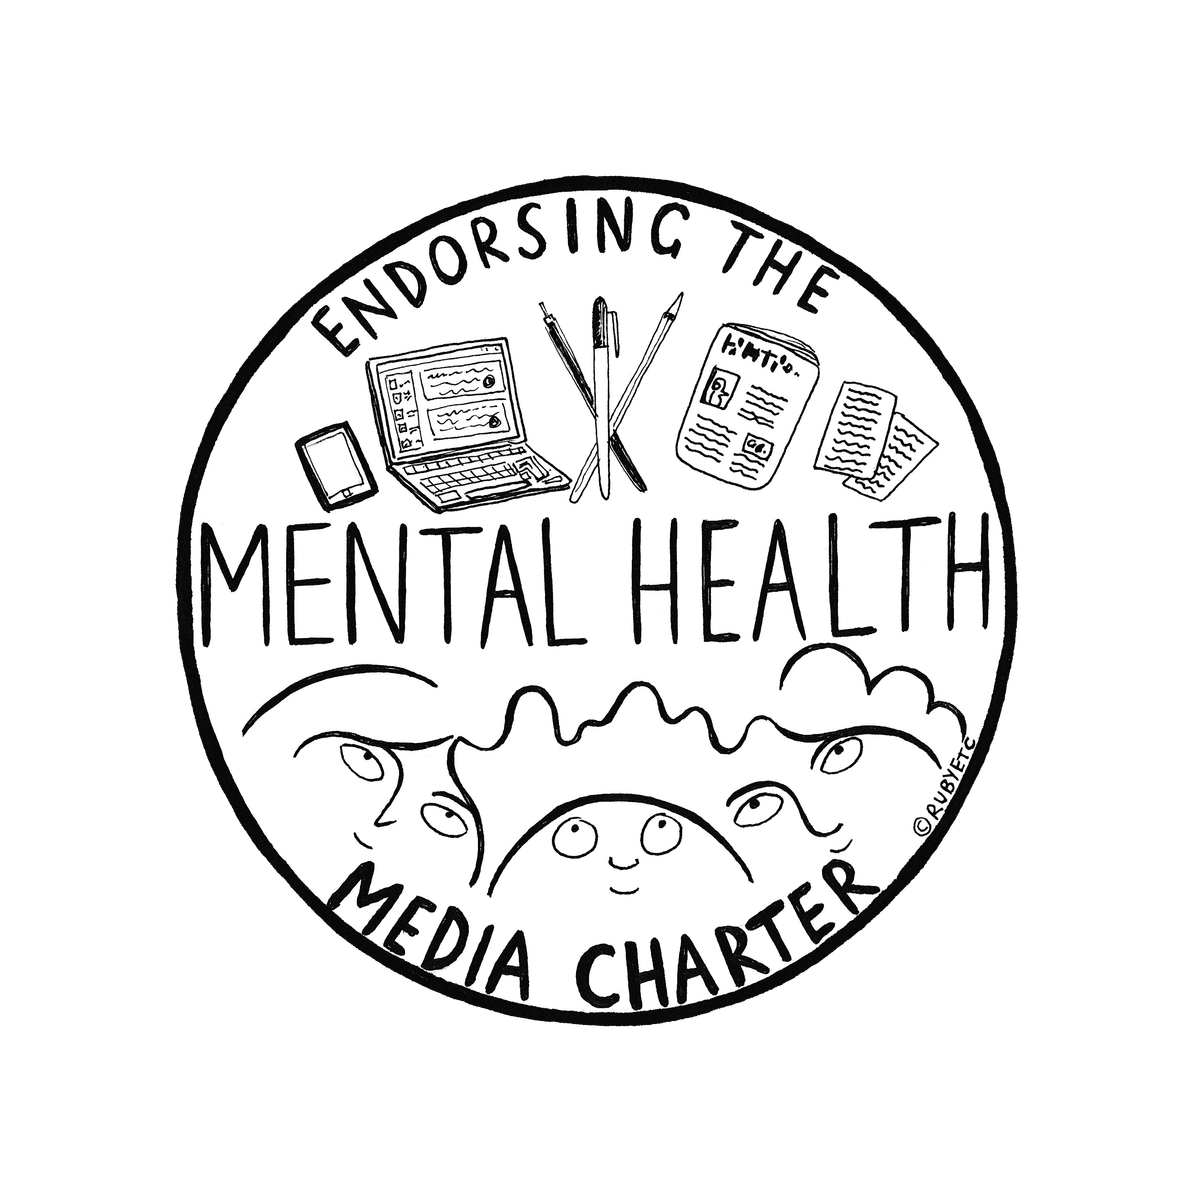 Personality drawing mental health. Media charter mhmediacharter brizzlelass